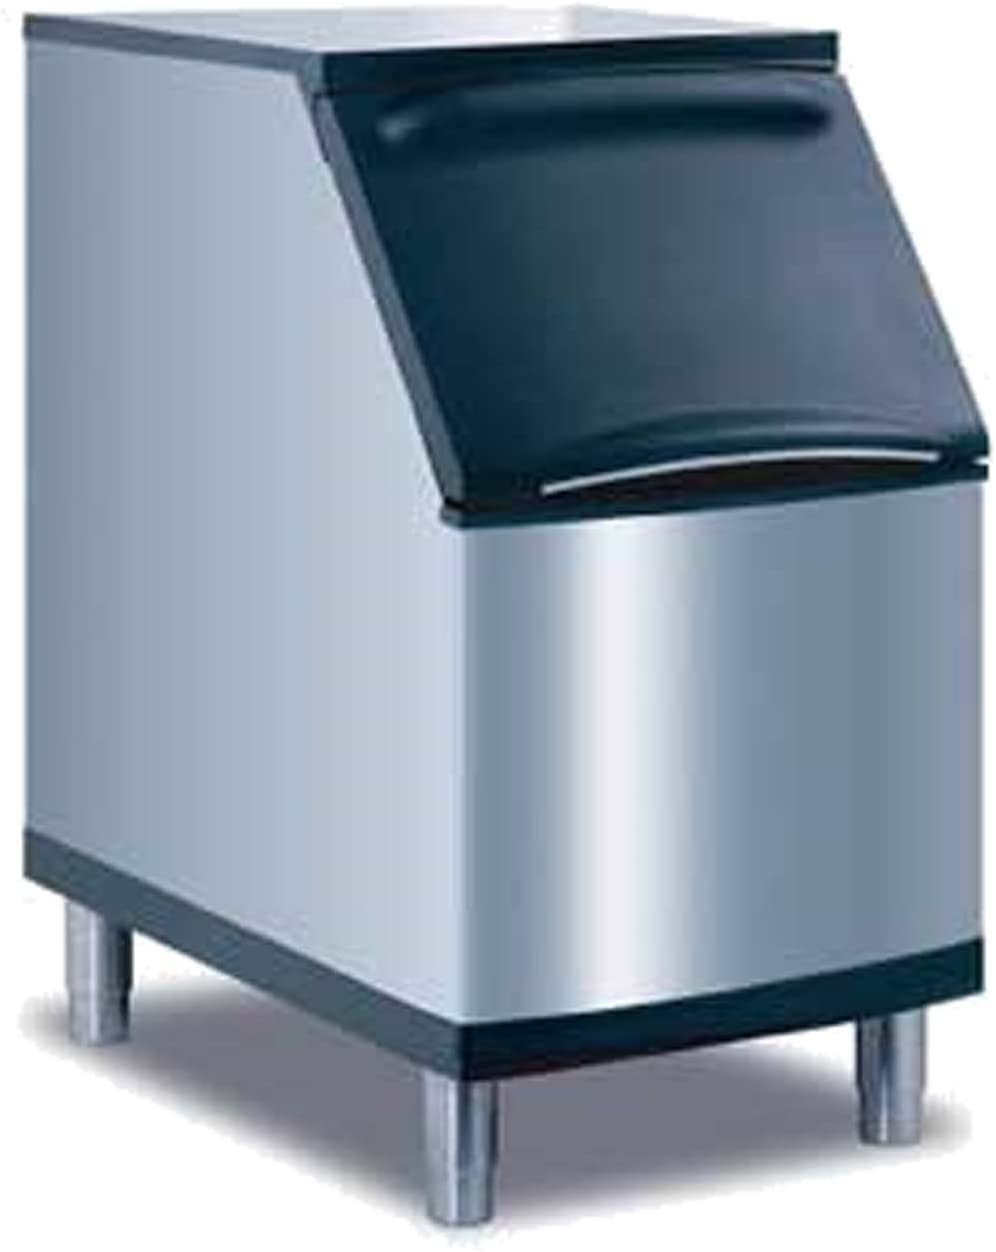 B004W7TYQ8 Manitowoc B-320 Ice Bin - 210 Pound Capacity Ice Storage Capacity (Ice Machine Not Included) 61dvqaDuxqL.SL1500_